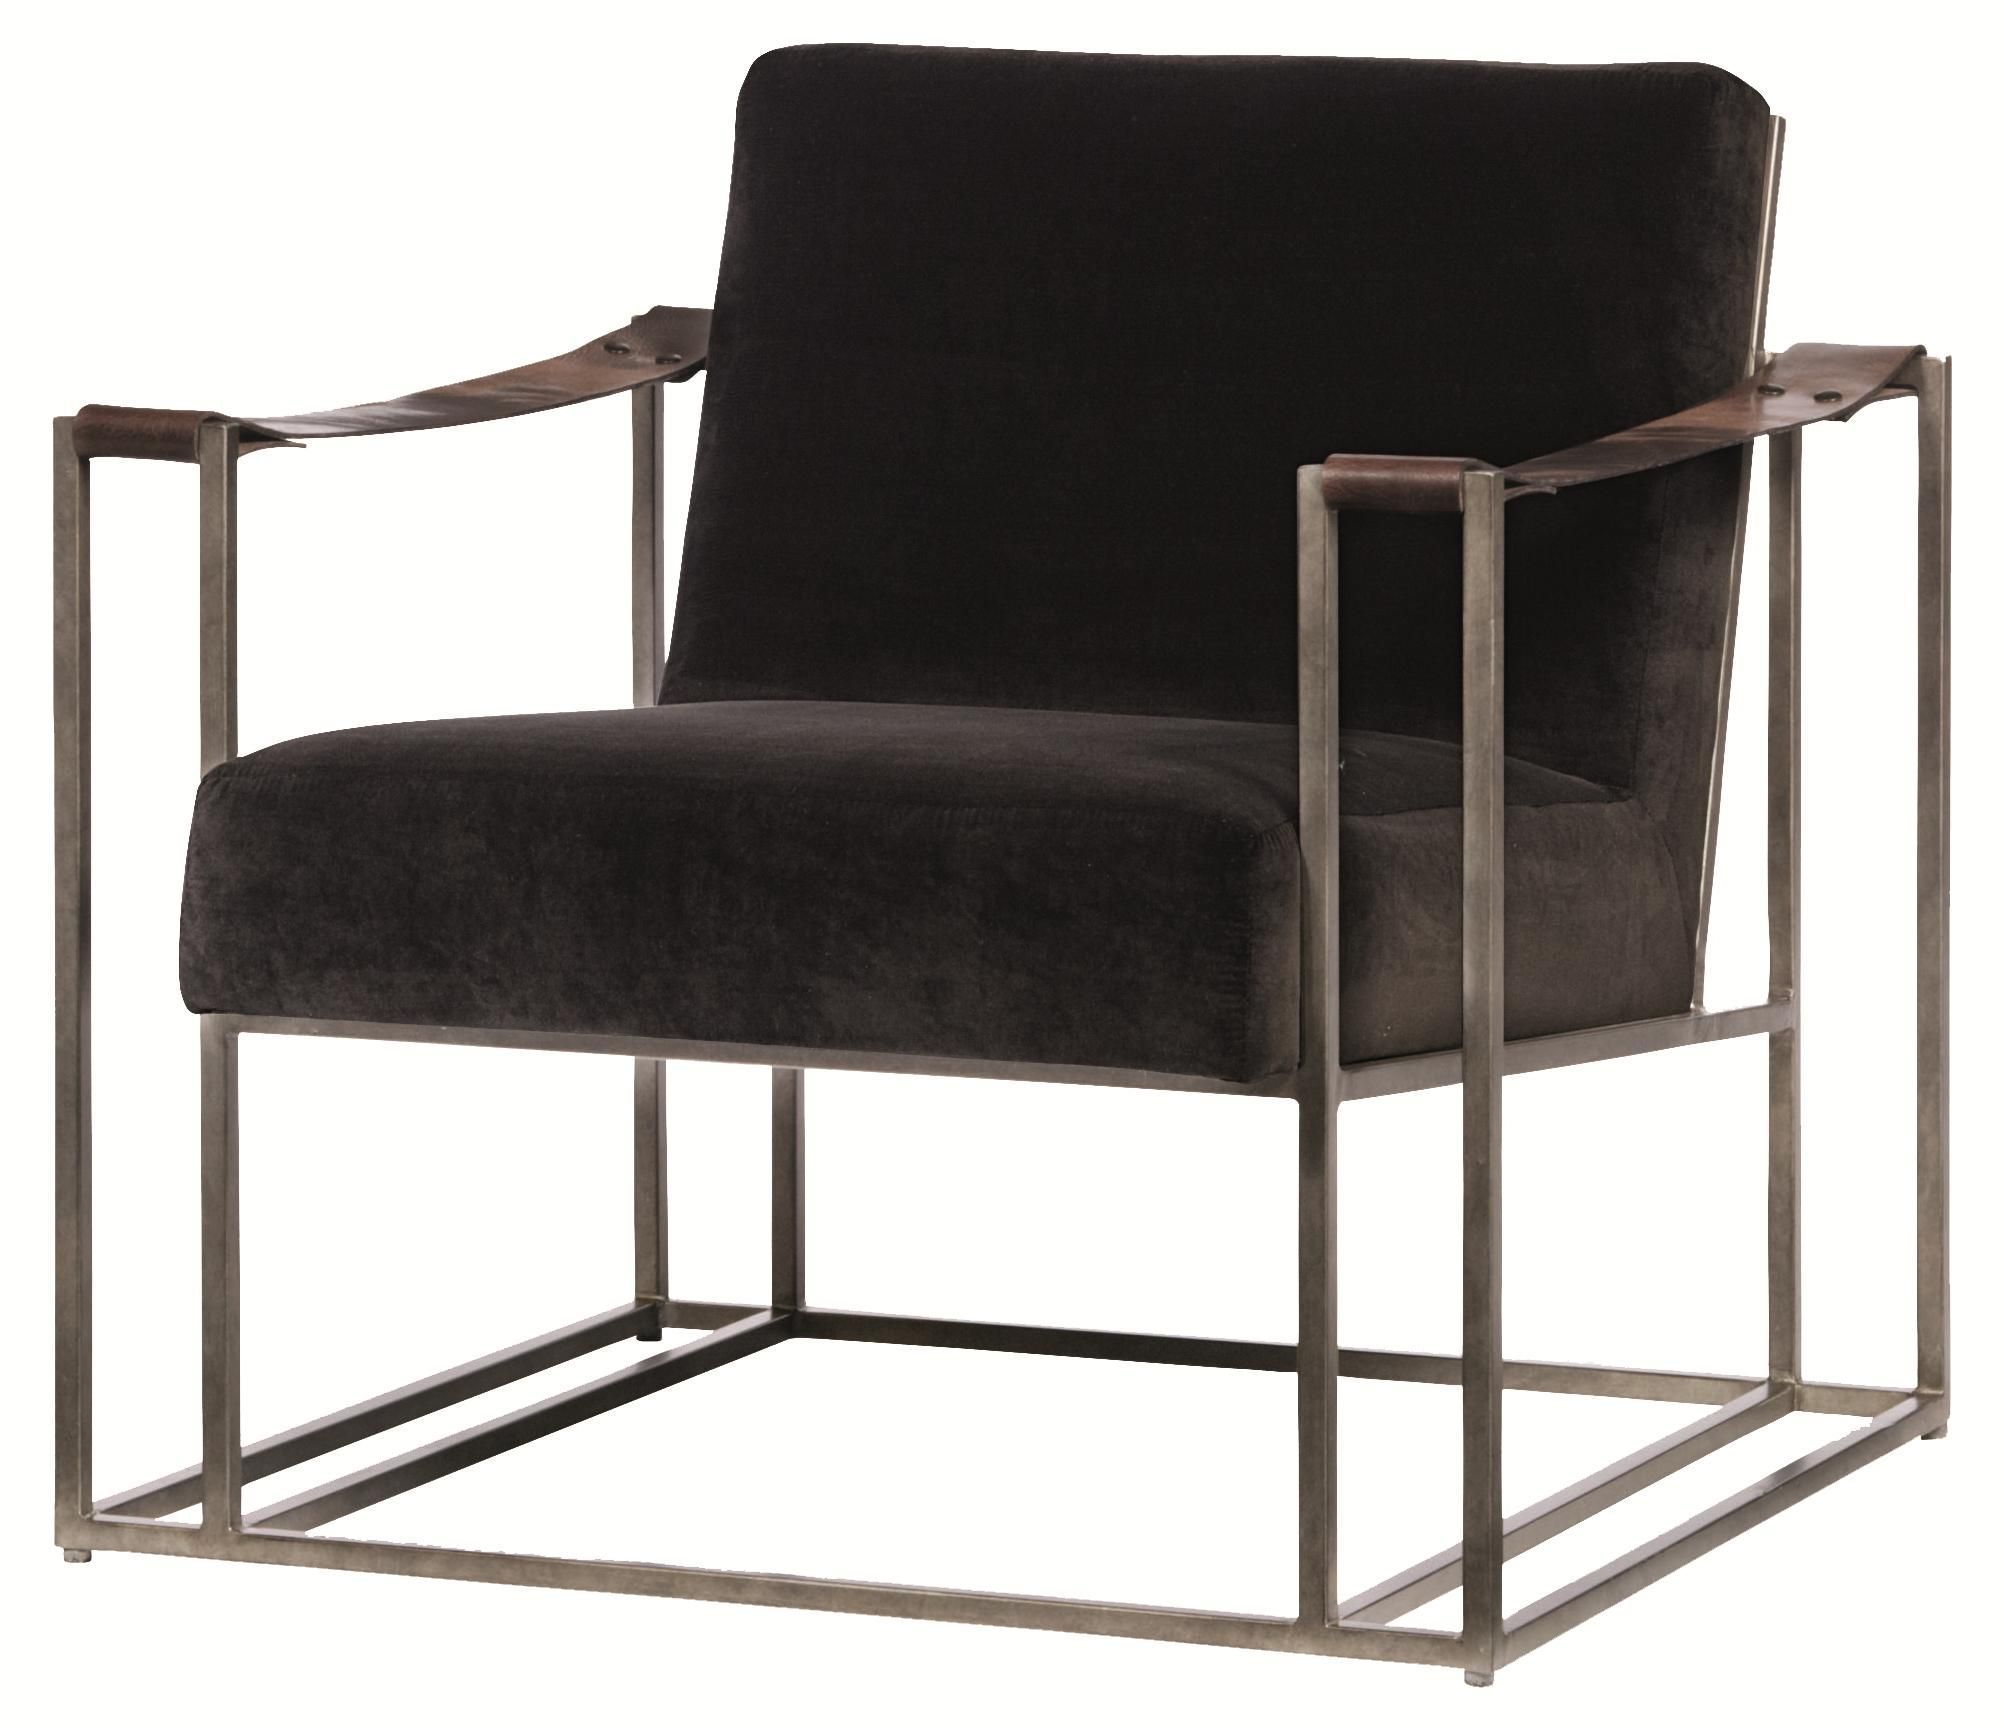 Awesome Dekker High End Accent Chair With Modern Style By Bernhardt Creativecarmelina Interior Chair Design Creativecarmelinacom